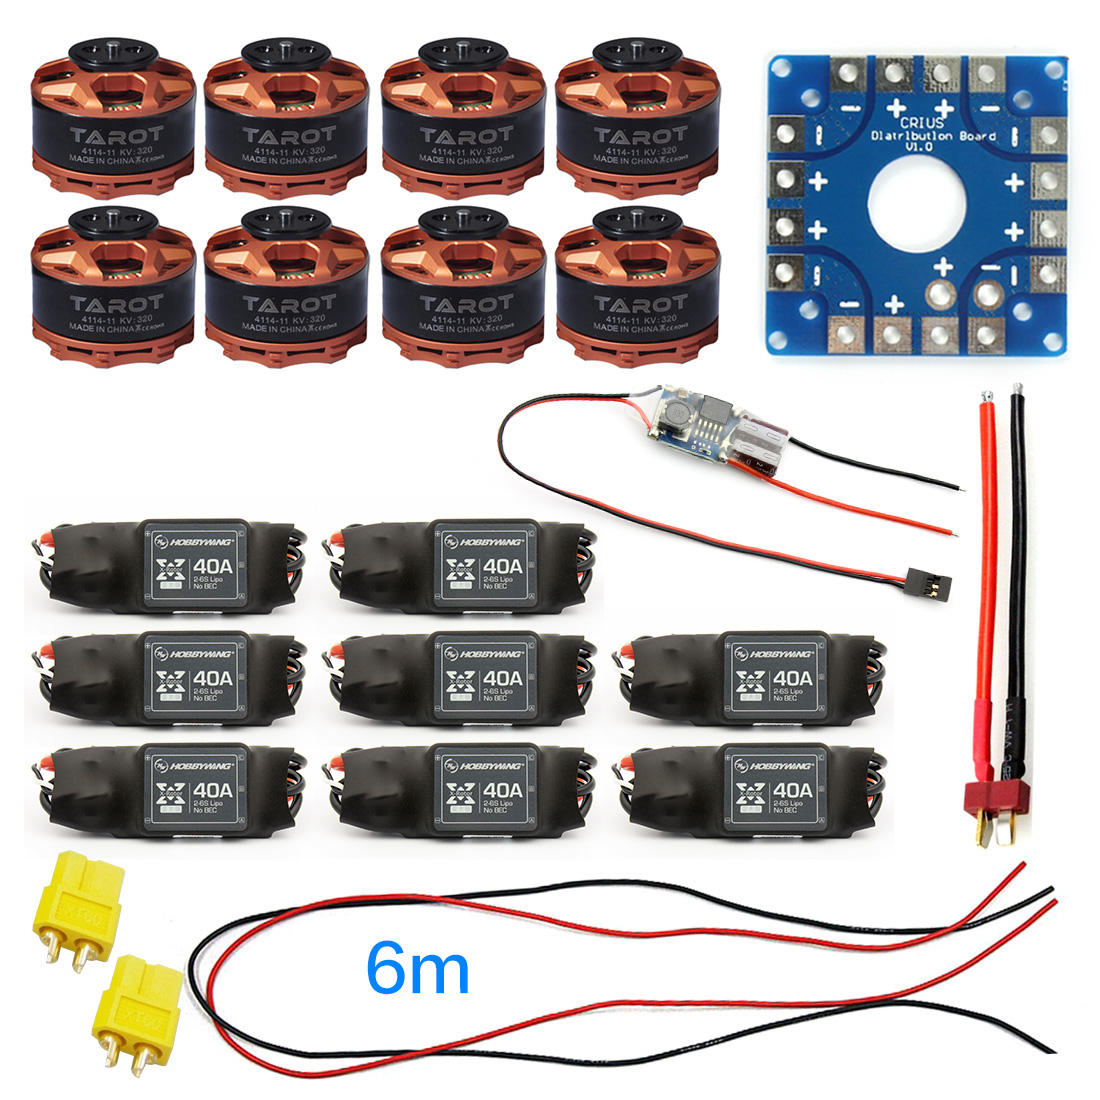 F04997-G JMT Assembled Kit 40A ESC Controller Tarot 320KV Motor Connection Board Wire for 8-axle Drone Multi Rotor Hexacopter FS jmt diy drone f550 multi rotor full kit 1045 3 props 6 axle rc multi hexac